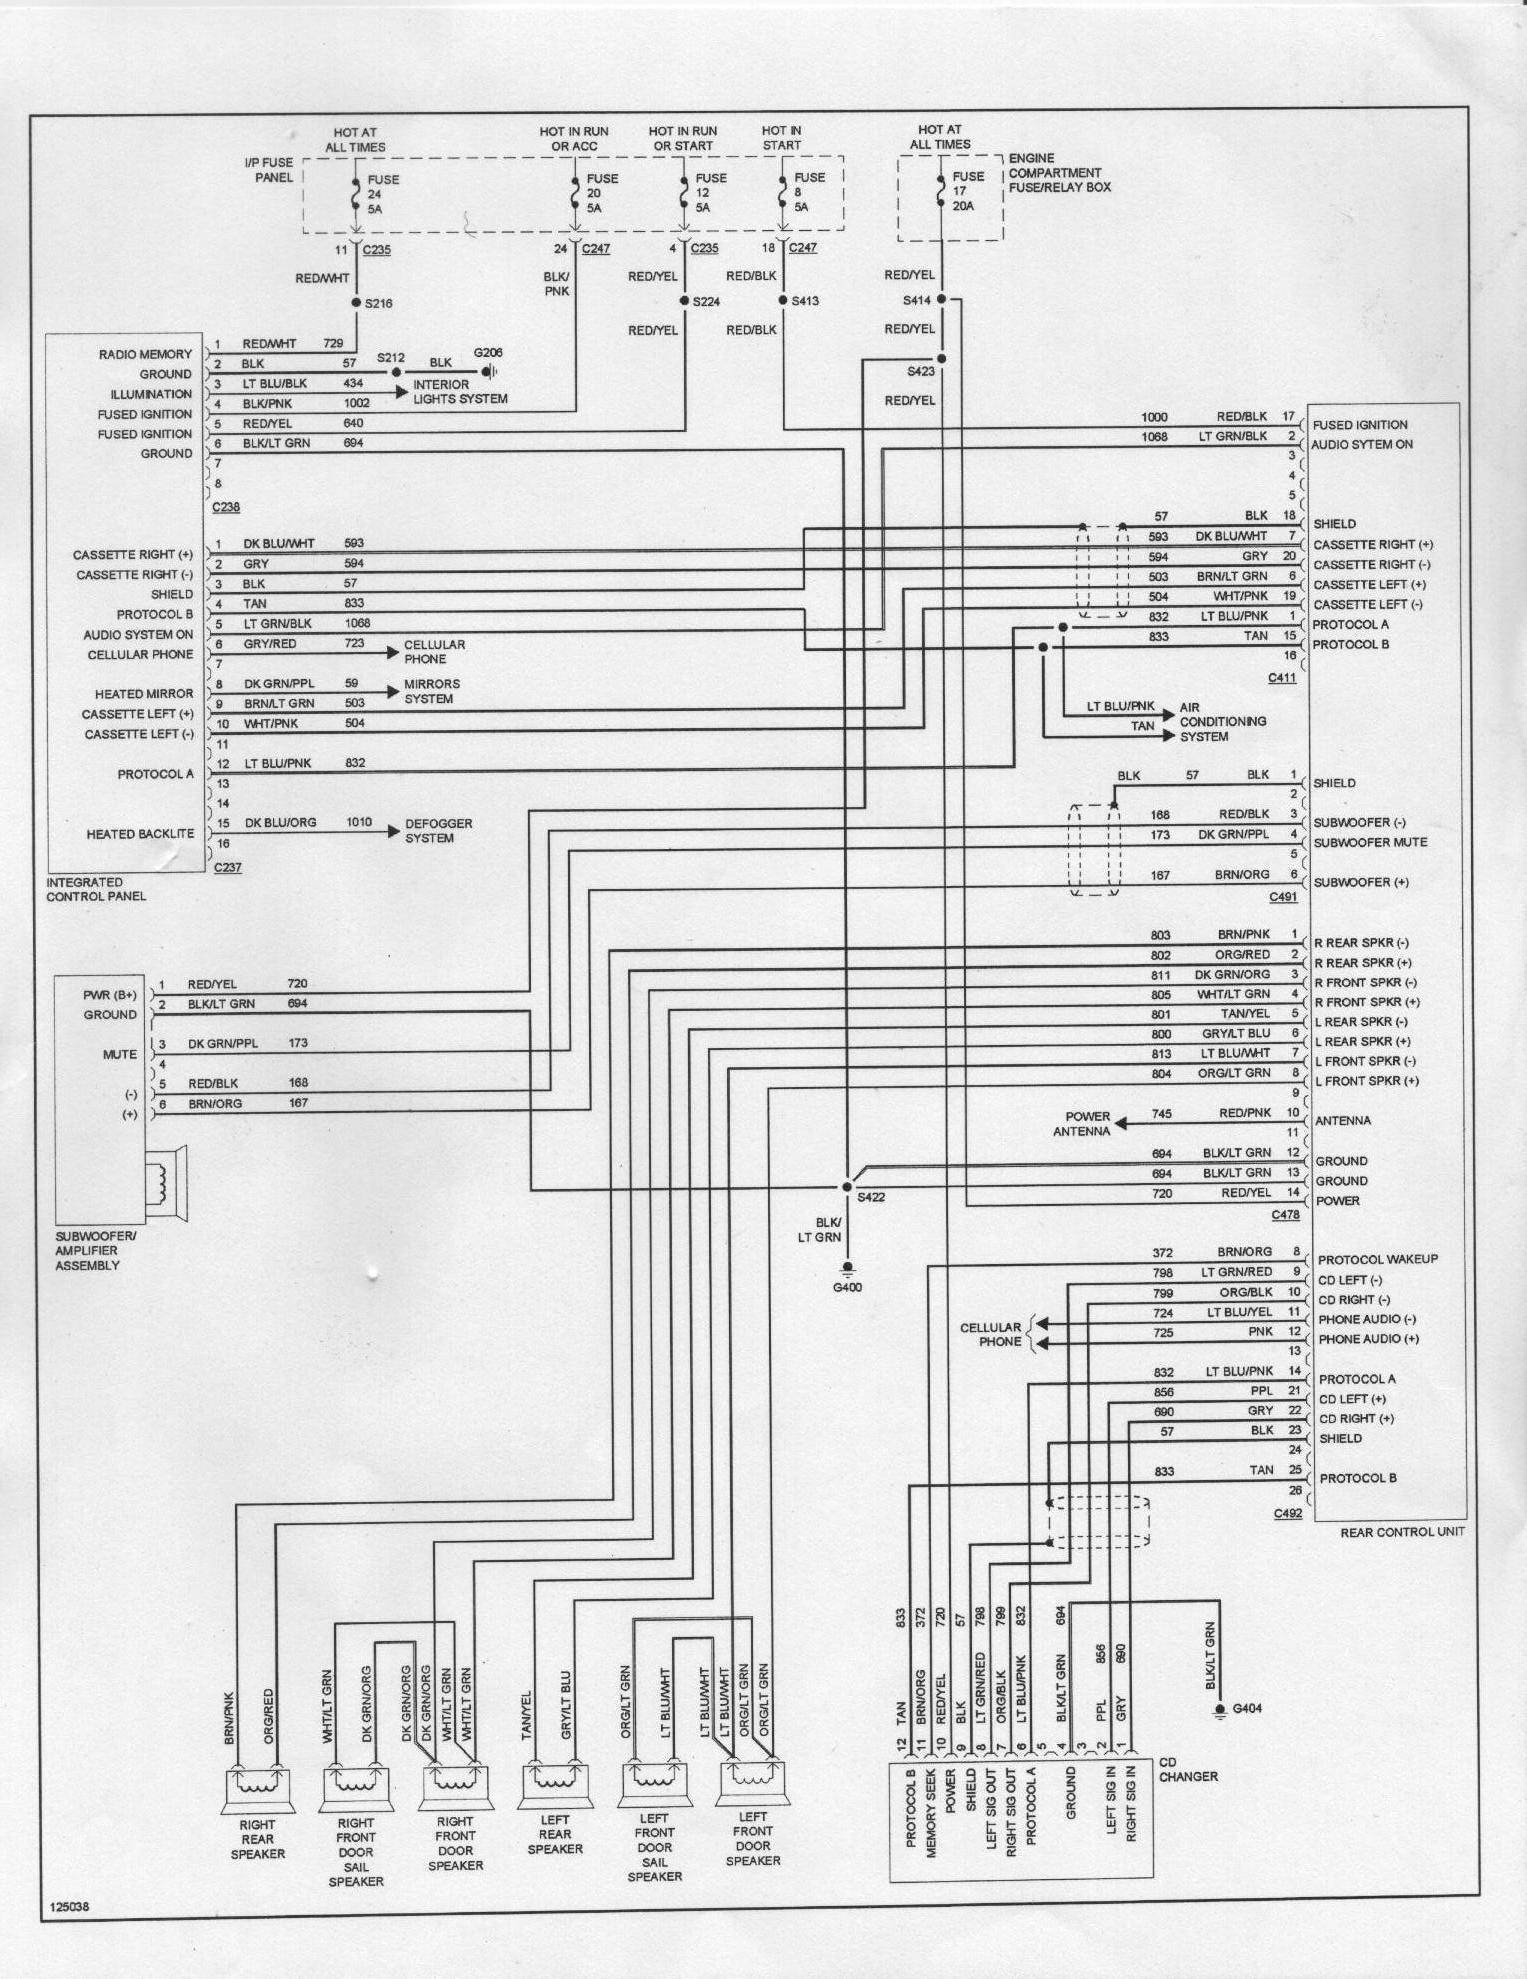 2002 Ford Focus Radio Wiring Diagram Nilzanet – 2002 Ford Focus Wiring Diagram